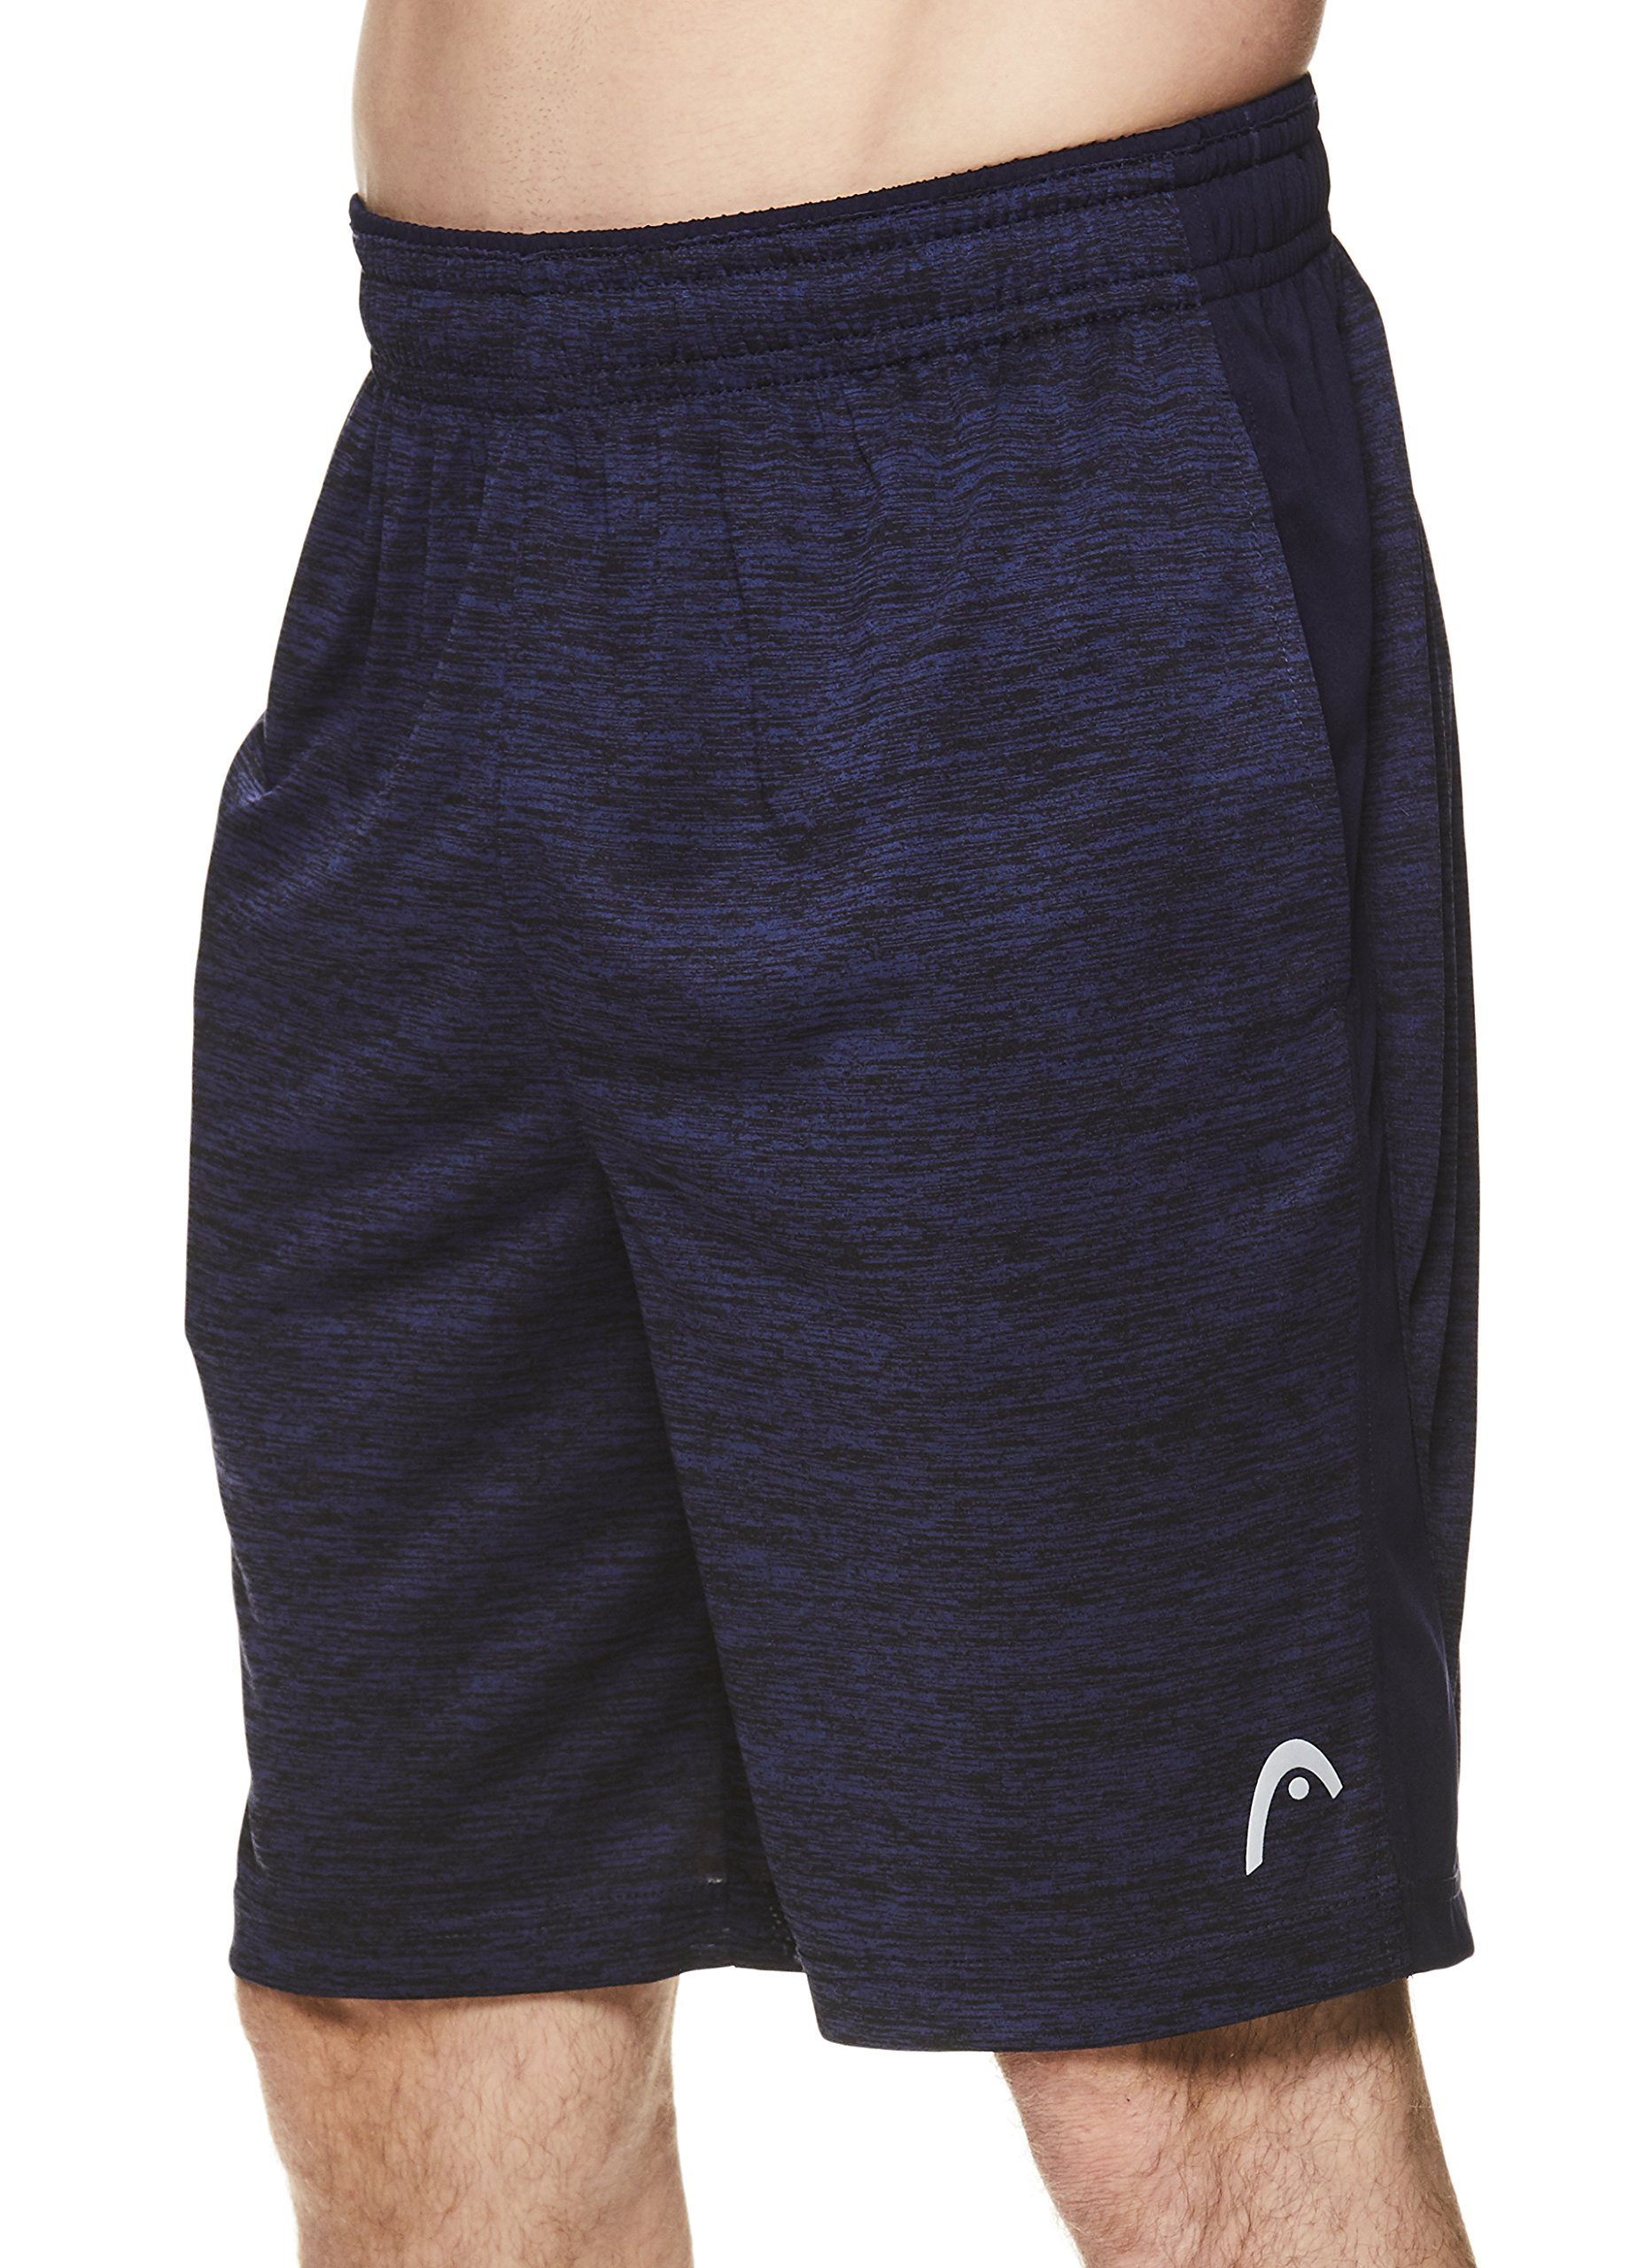 HEAD Men's Polyester Workout Gym & Running Shorts w/Elastic Waistband & Drawstring - Firestarter Navy Heather Blue, 2X